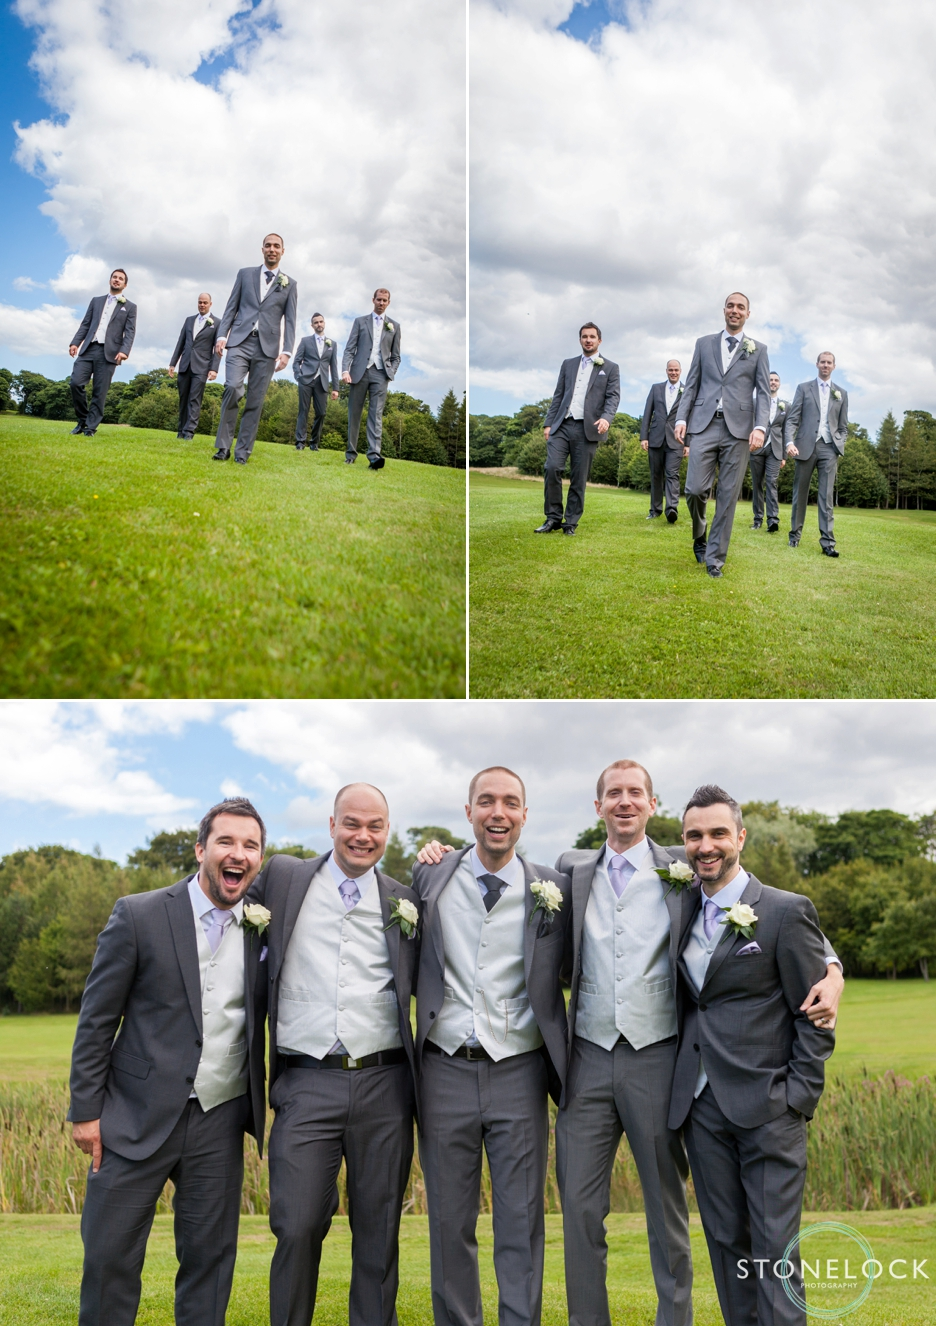 The groom and his groomsmen before the wedding